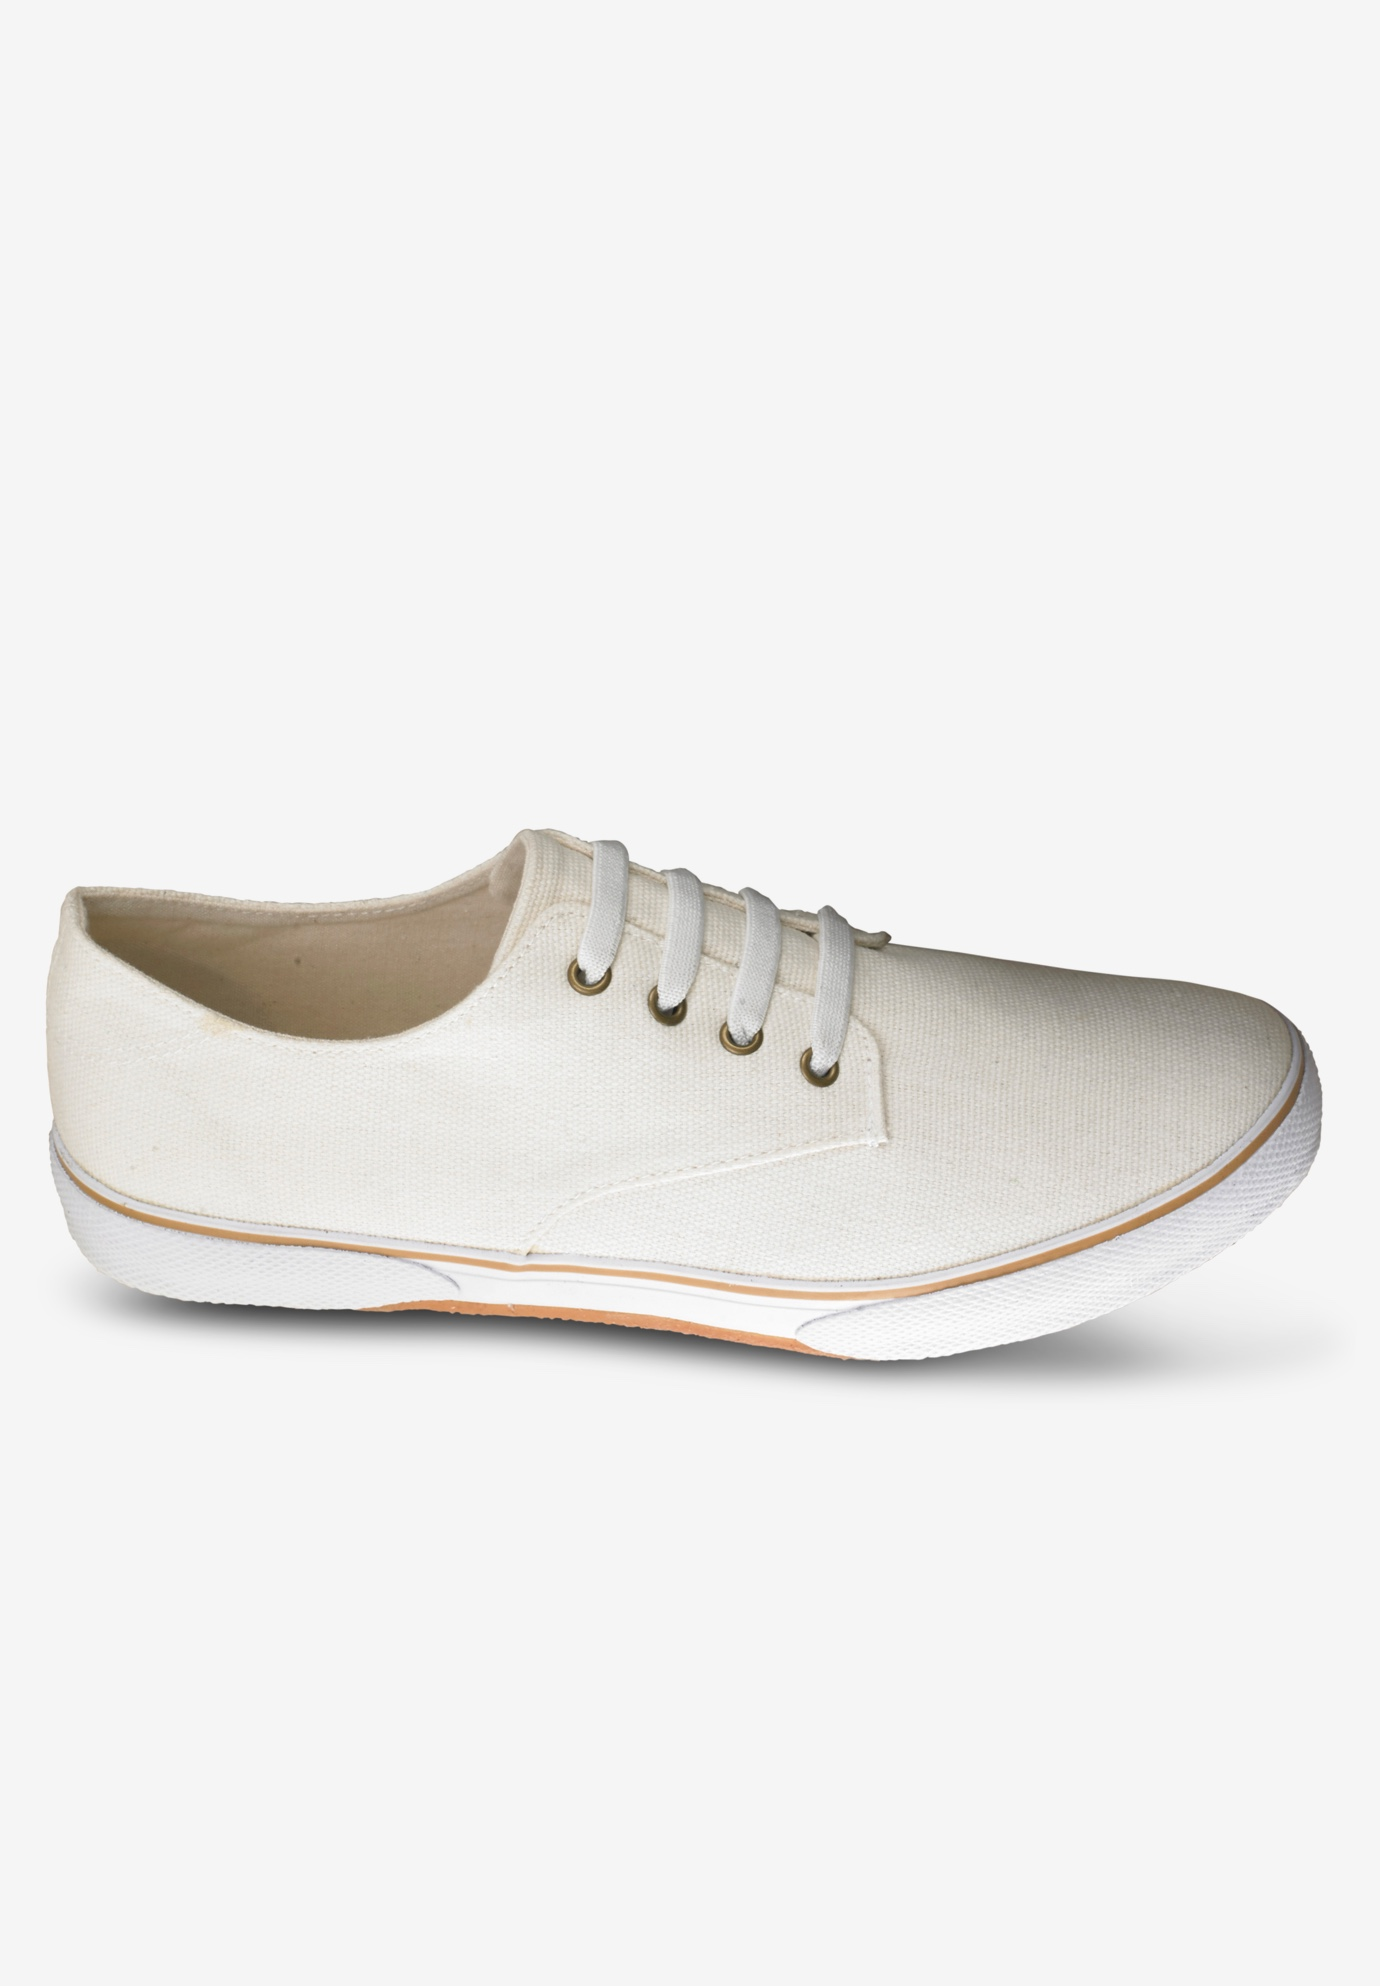 Slip-On Canvas Sneakers,